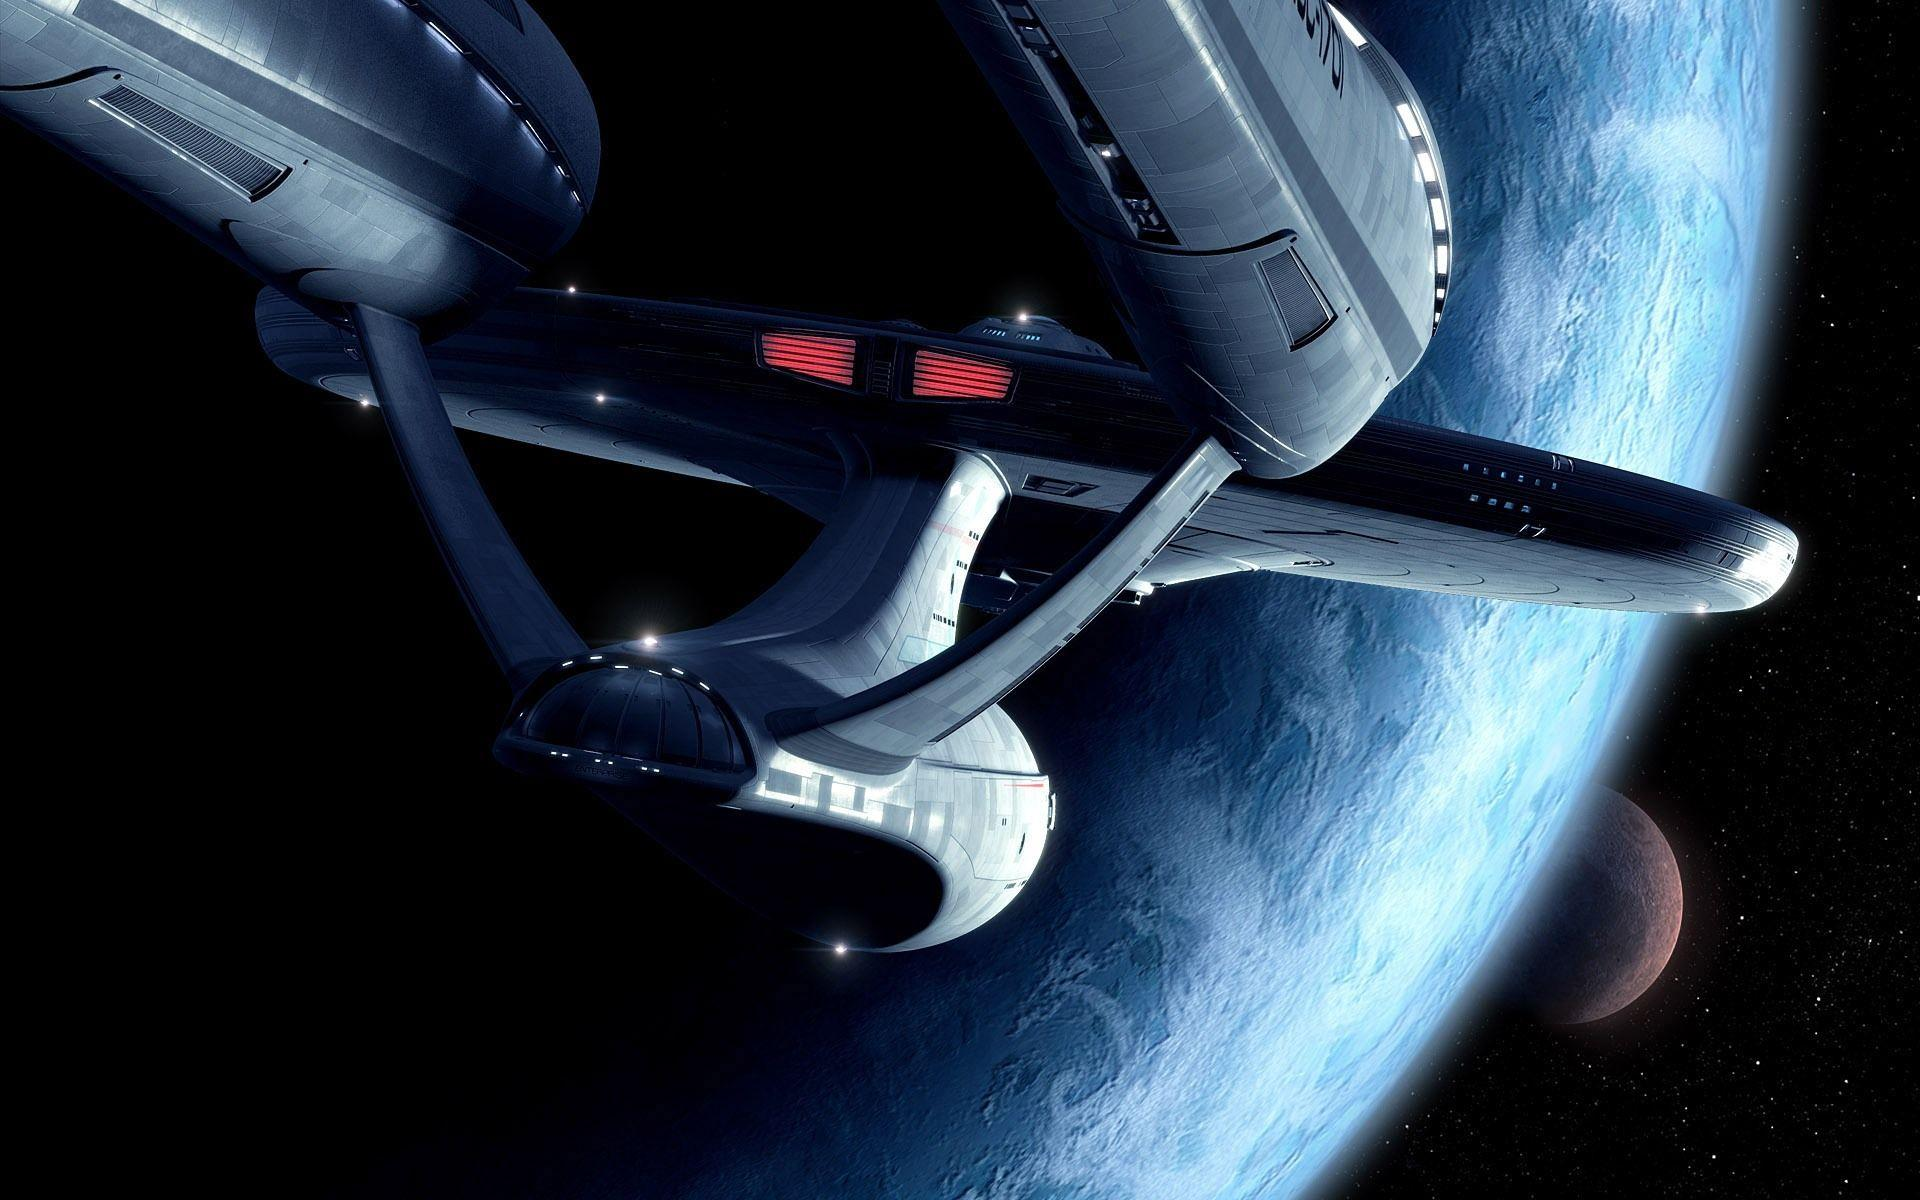 enterprise e wallpaper hd - photo #40